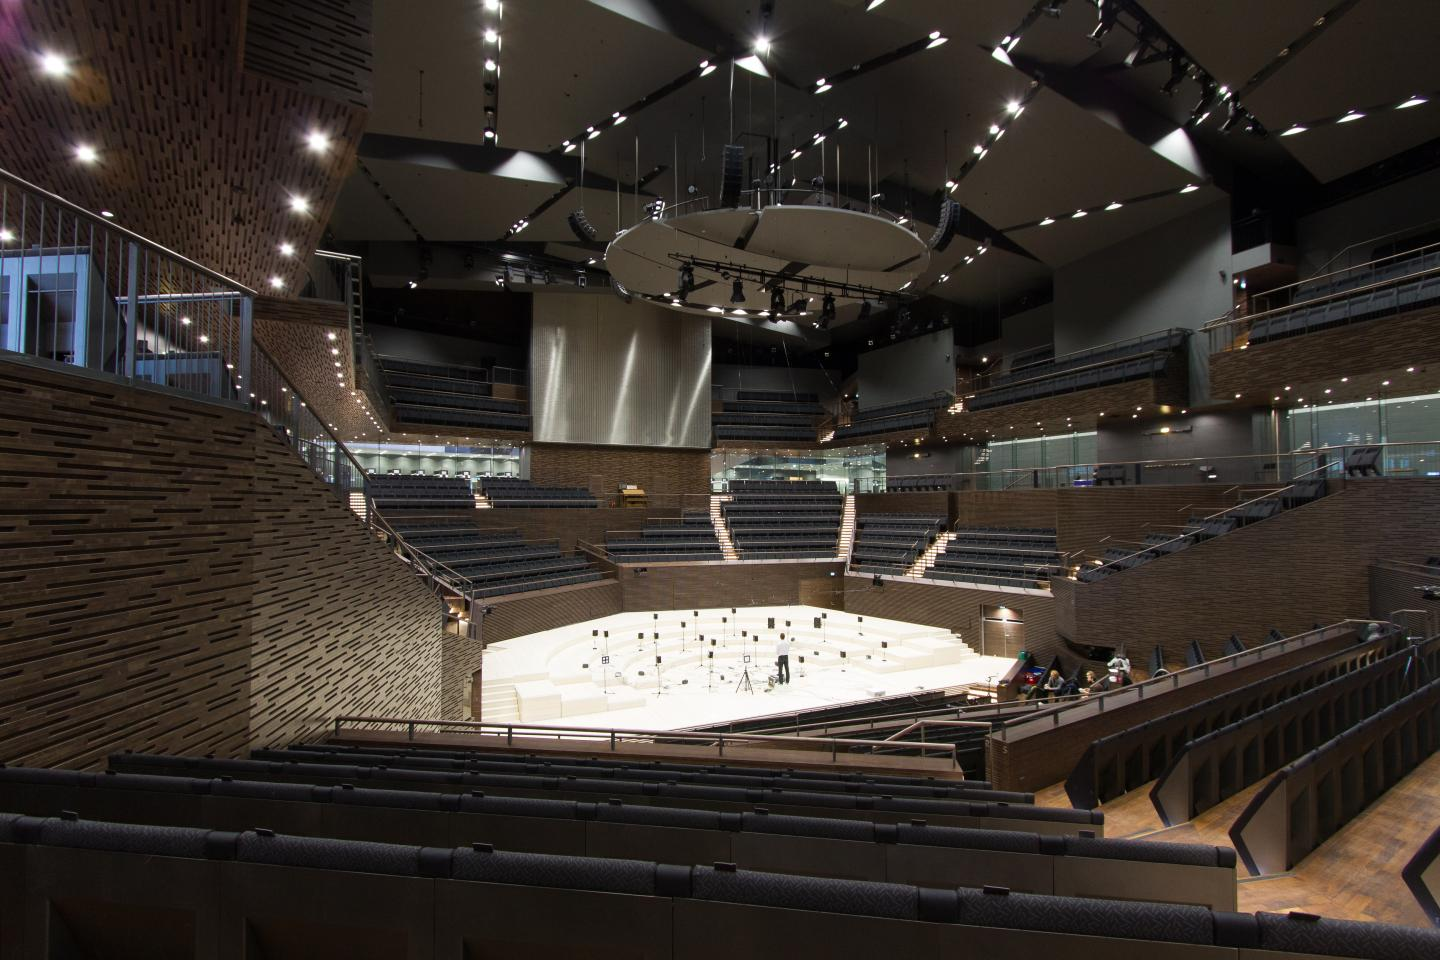 Helsinki Music Centre represents a more modern concert hall design.